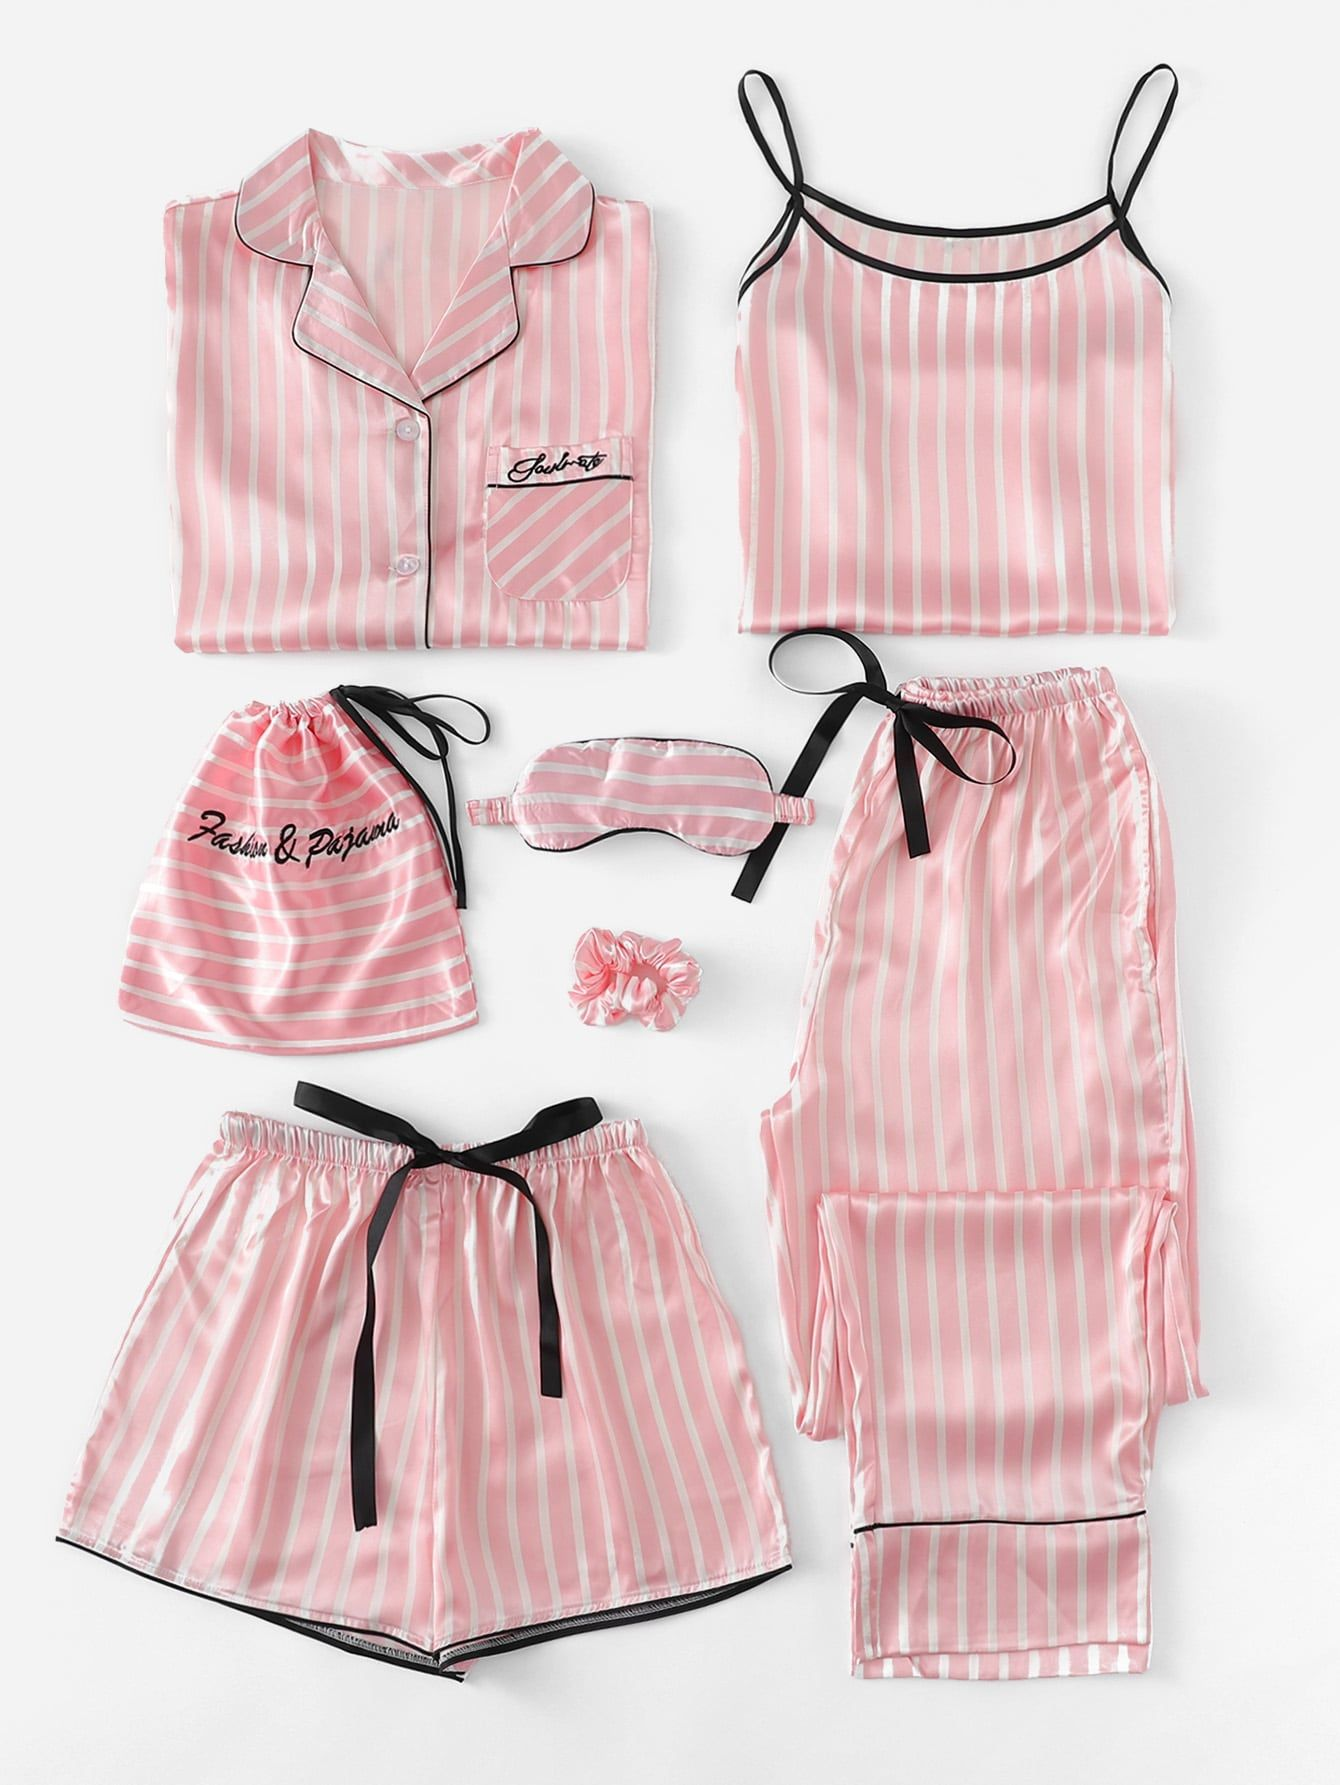 be3cdab9b 7Pcs Letter Embroidered Striped PJ Set With Shirt -SheIn(Sheinside)  Nightwear